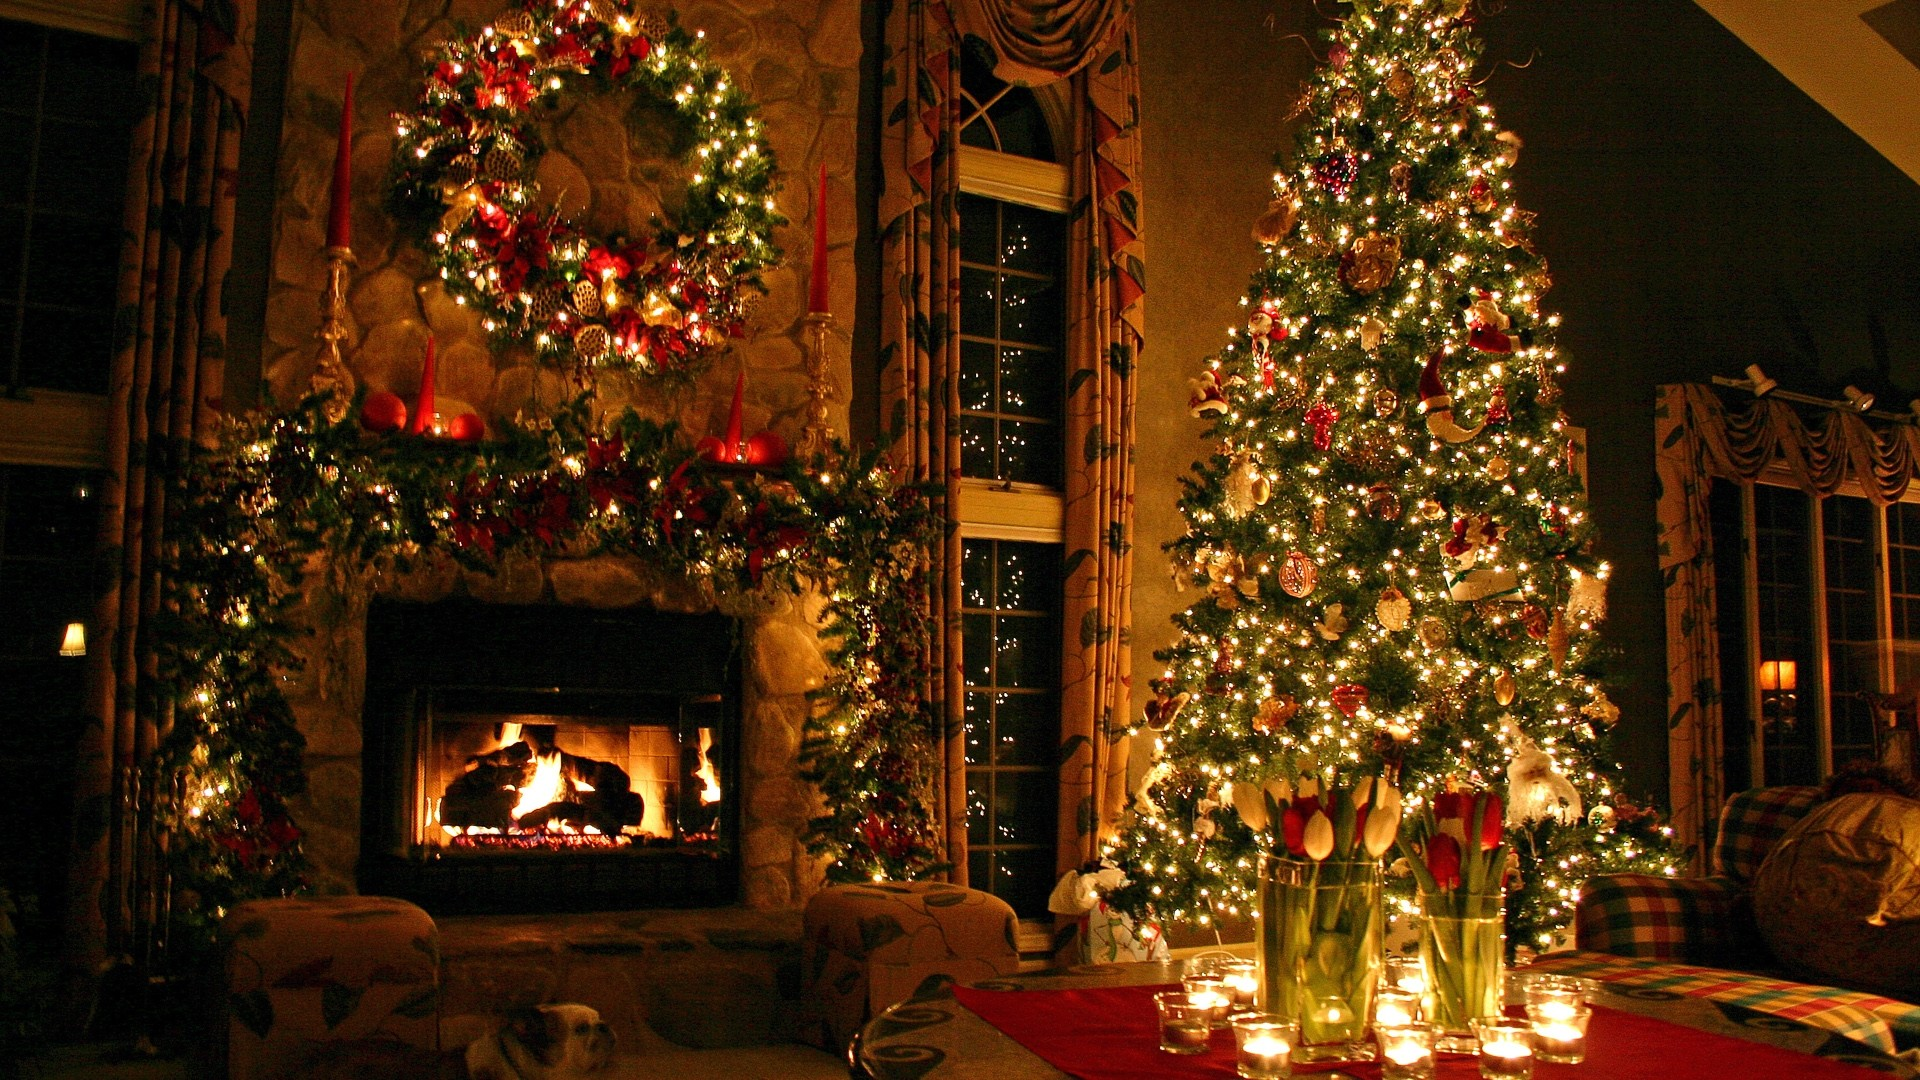 Christmas Wallpapers For Desktop 1920x1080 64 Images